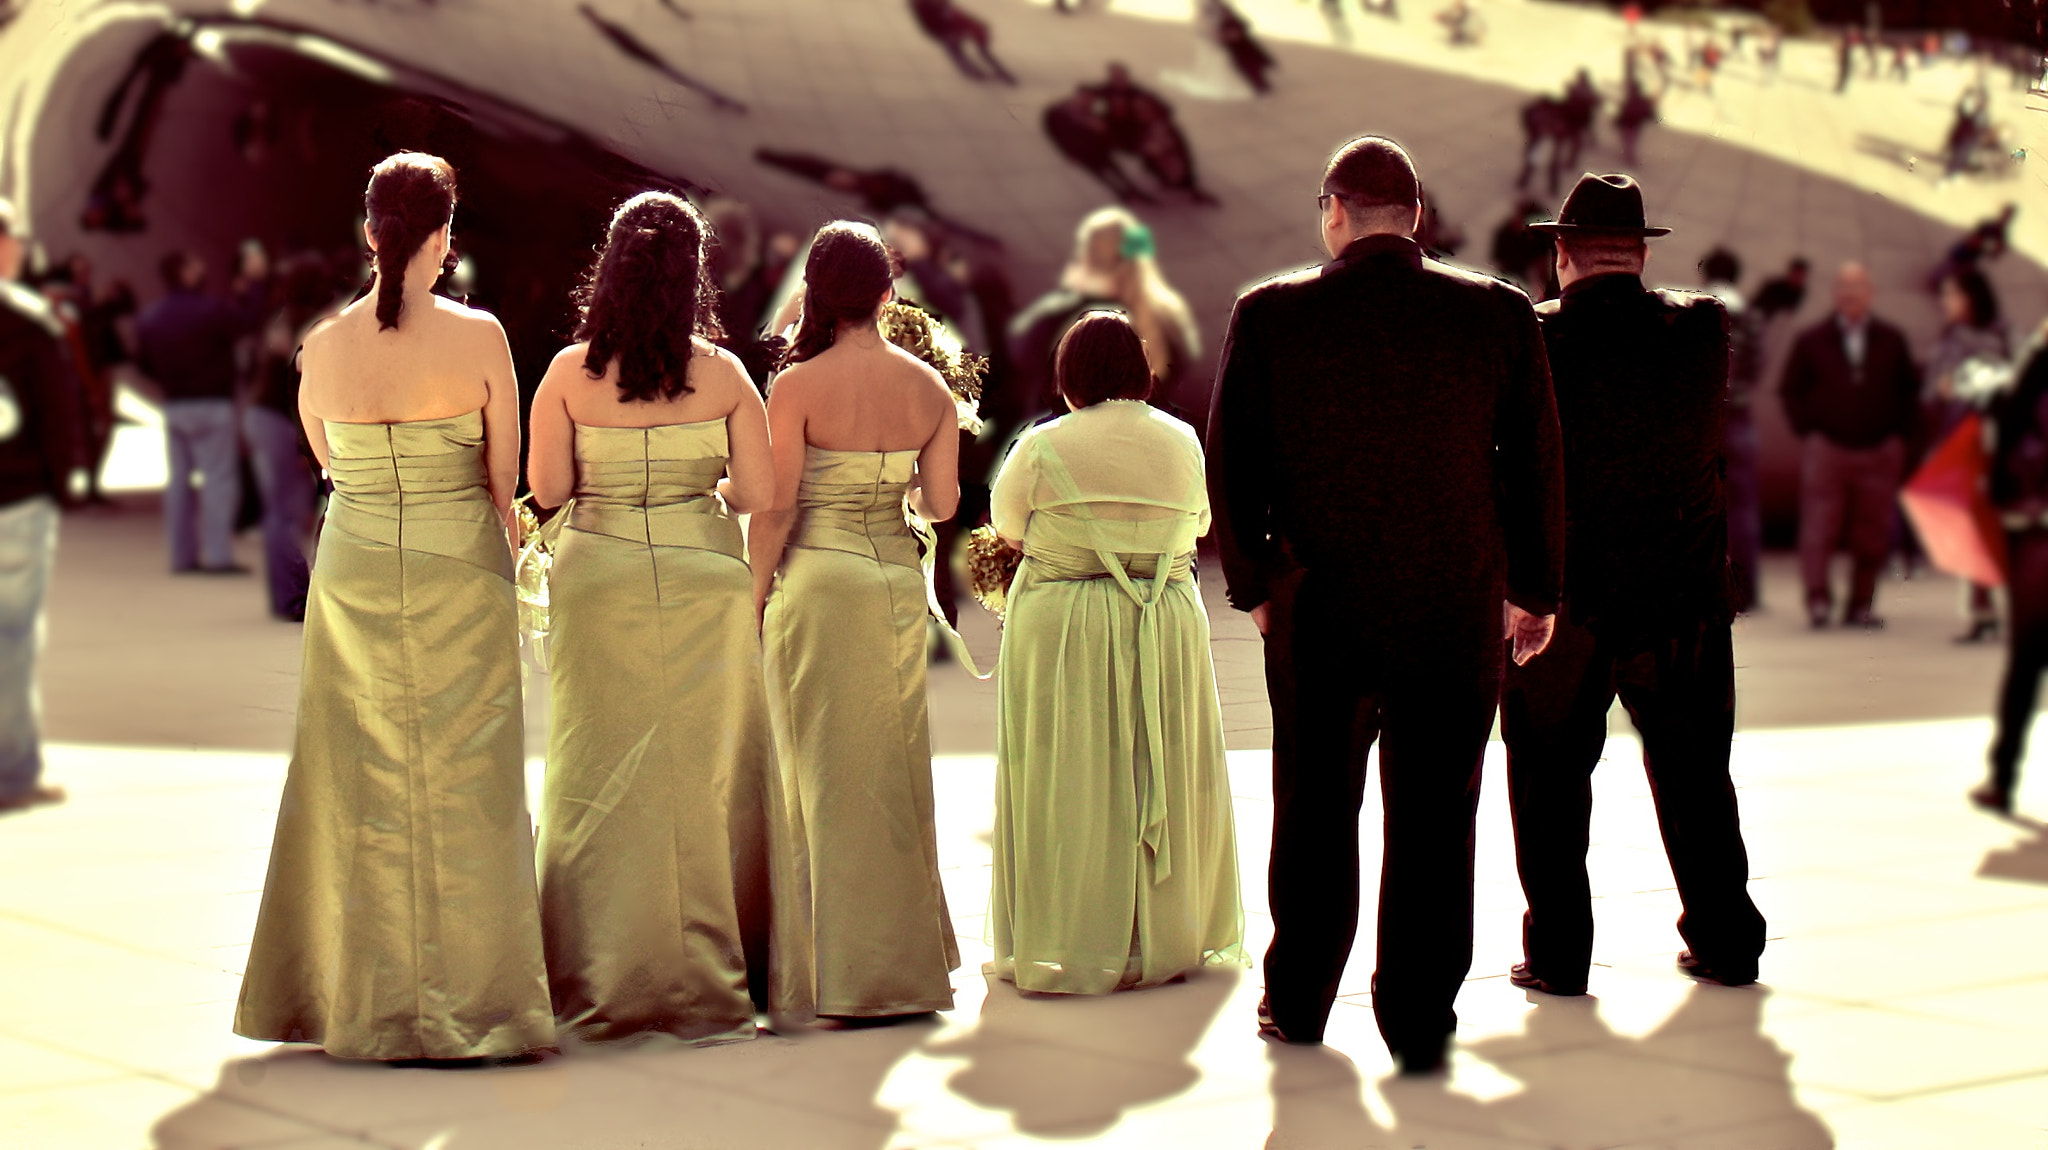 Photograph Wedding party by Gema Fernández on 500px